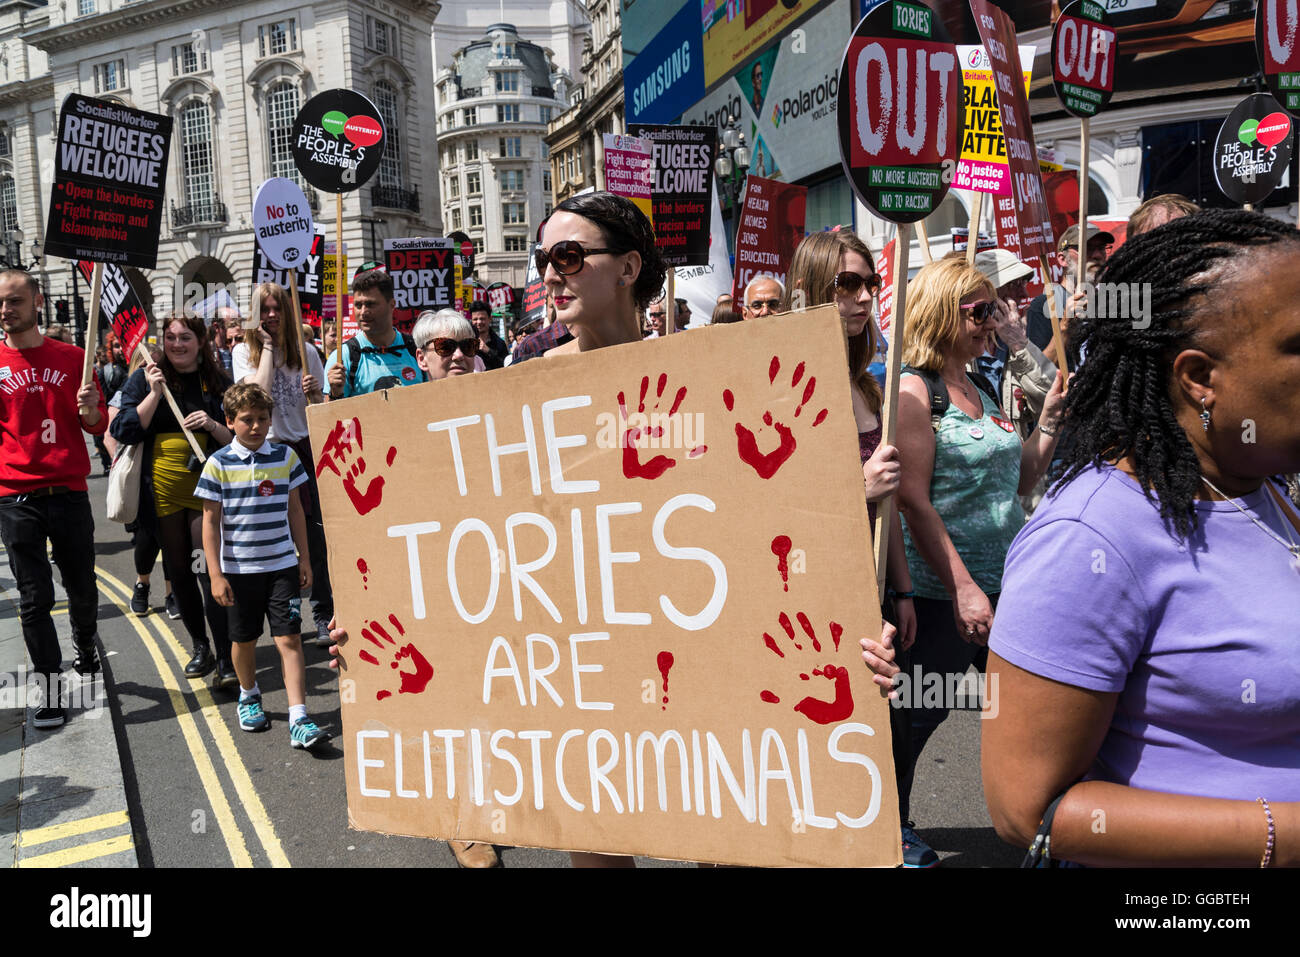 Tories are elitist criminals, No More Austerity - No To Racism - Tories Must Go demonstration, Saturday July 16th - Stock Image